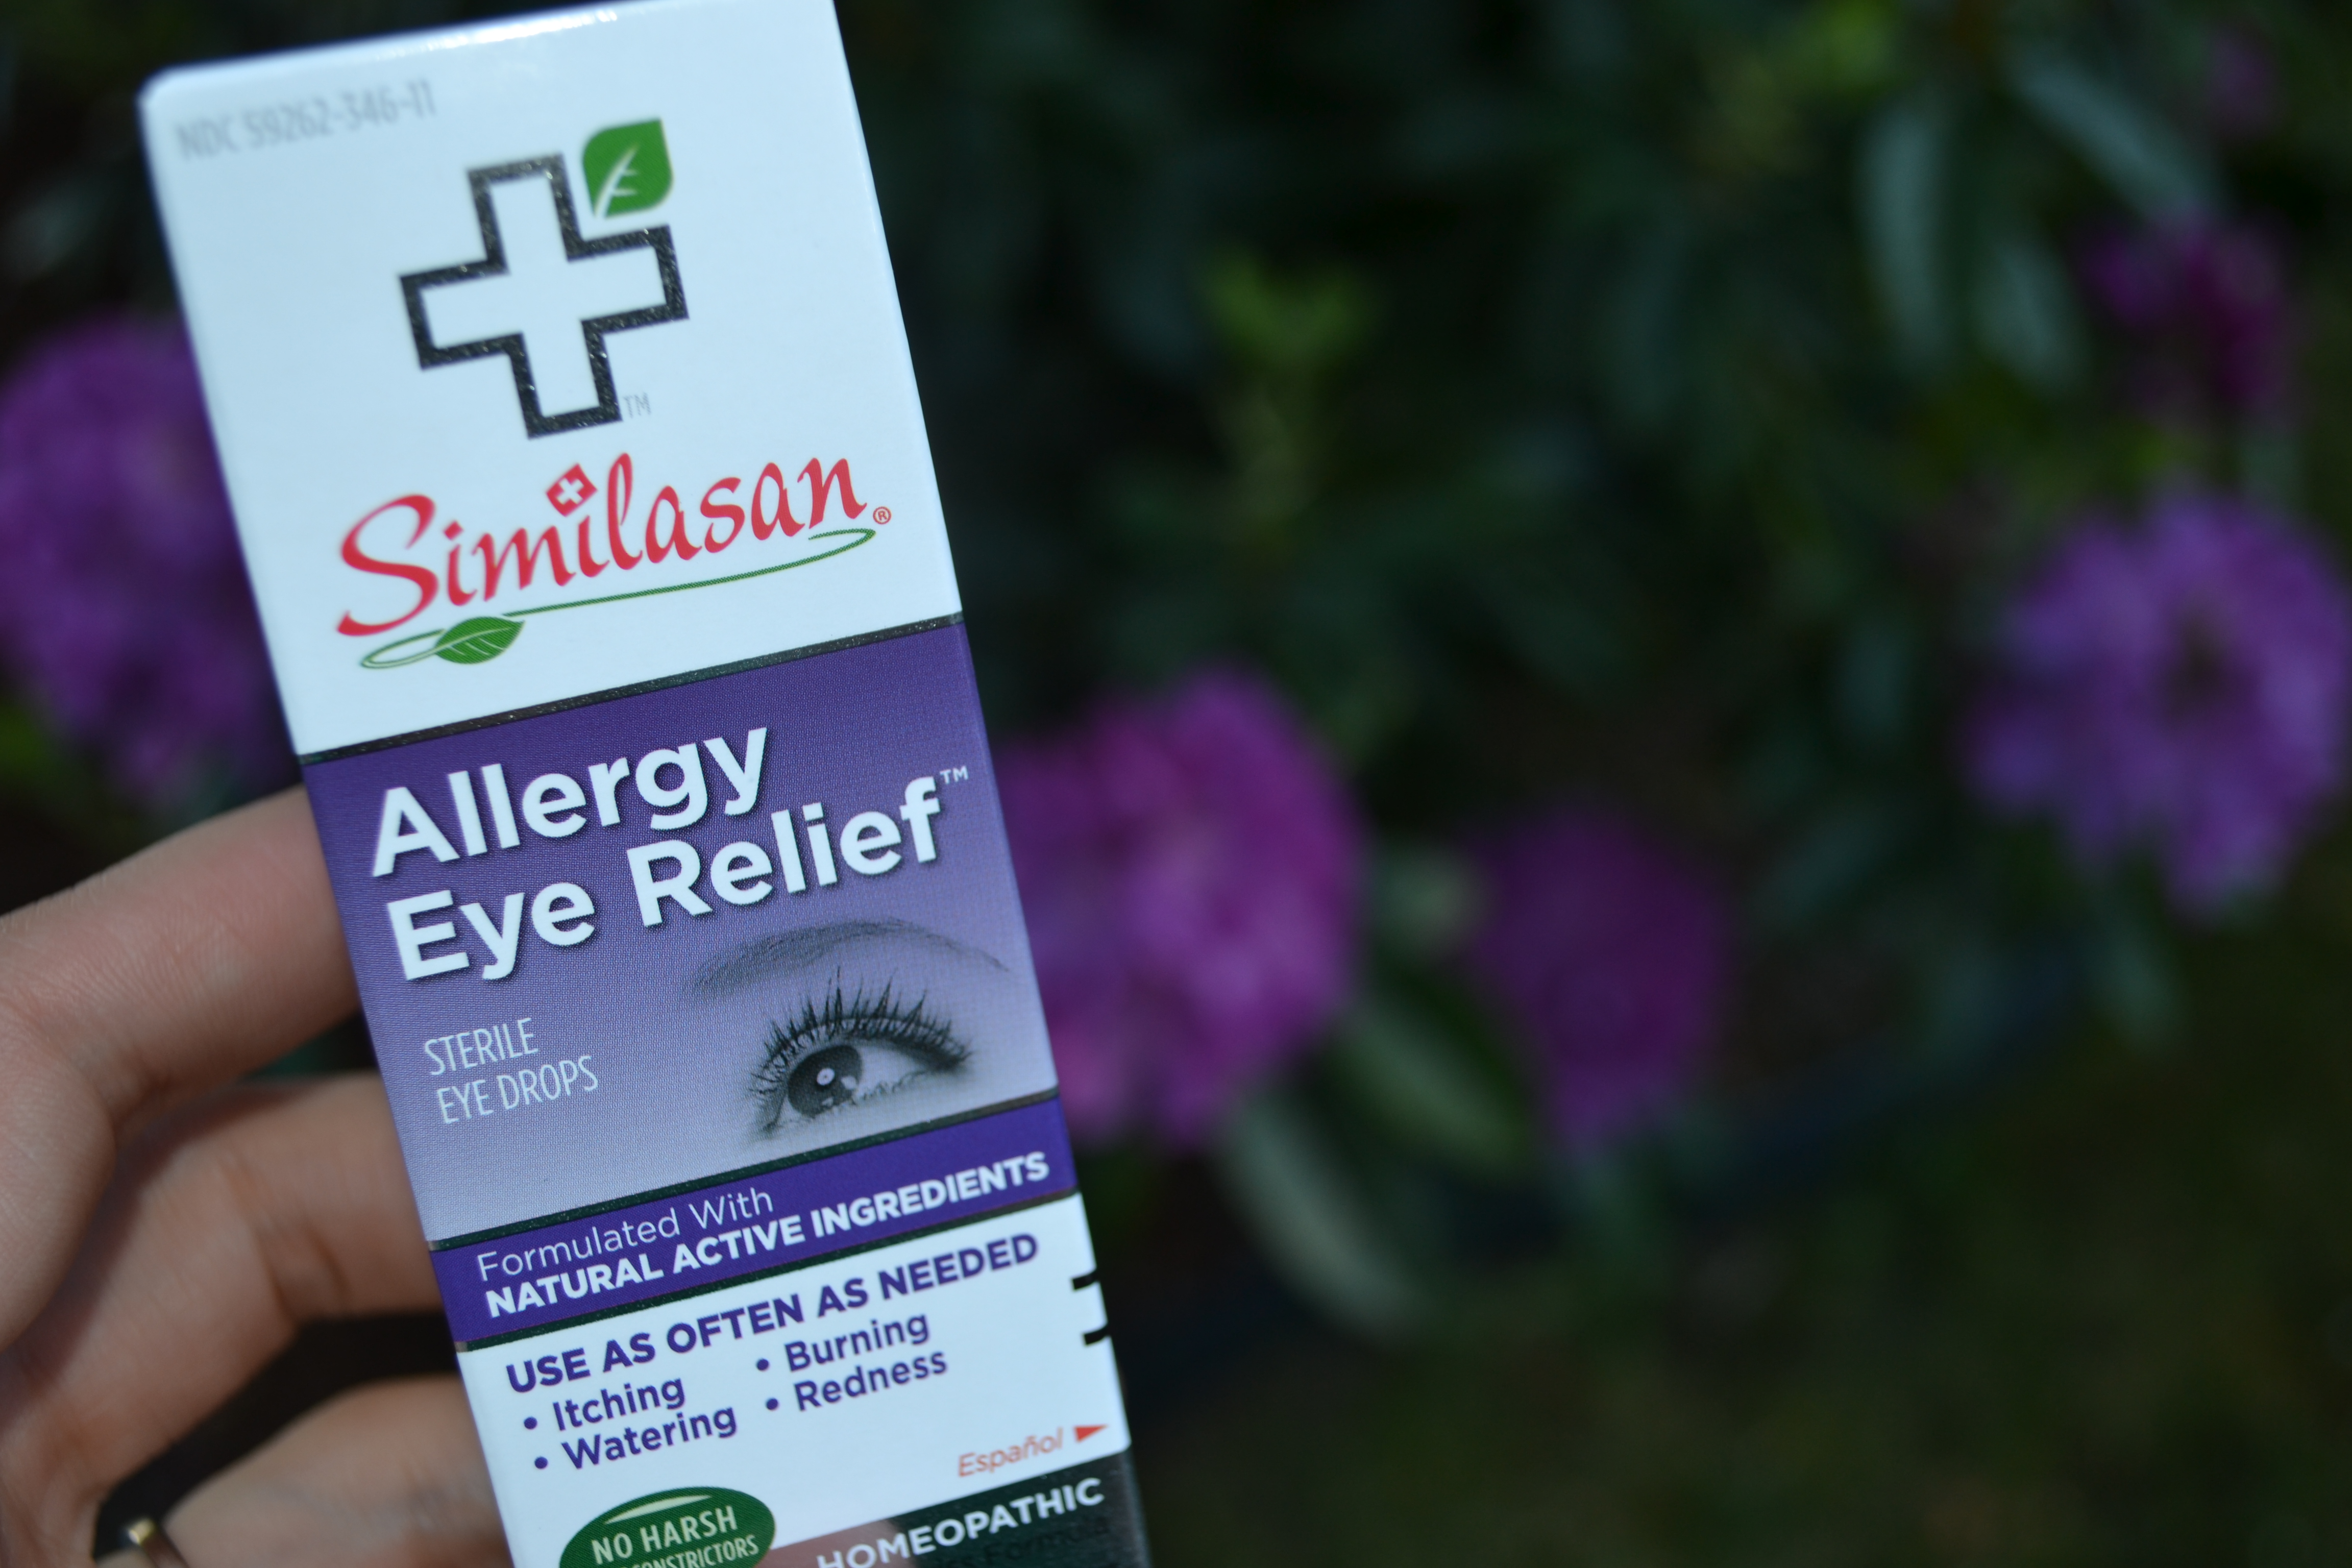 Get allergy relief with Similasan Allergy Eye Relief